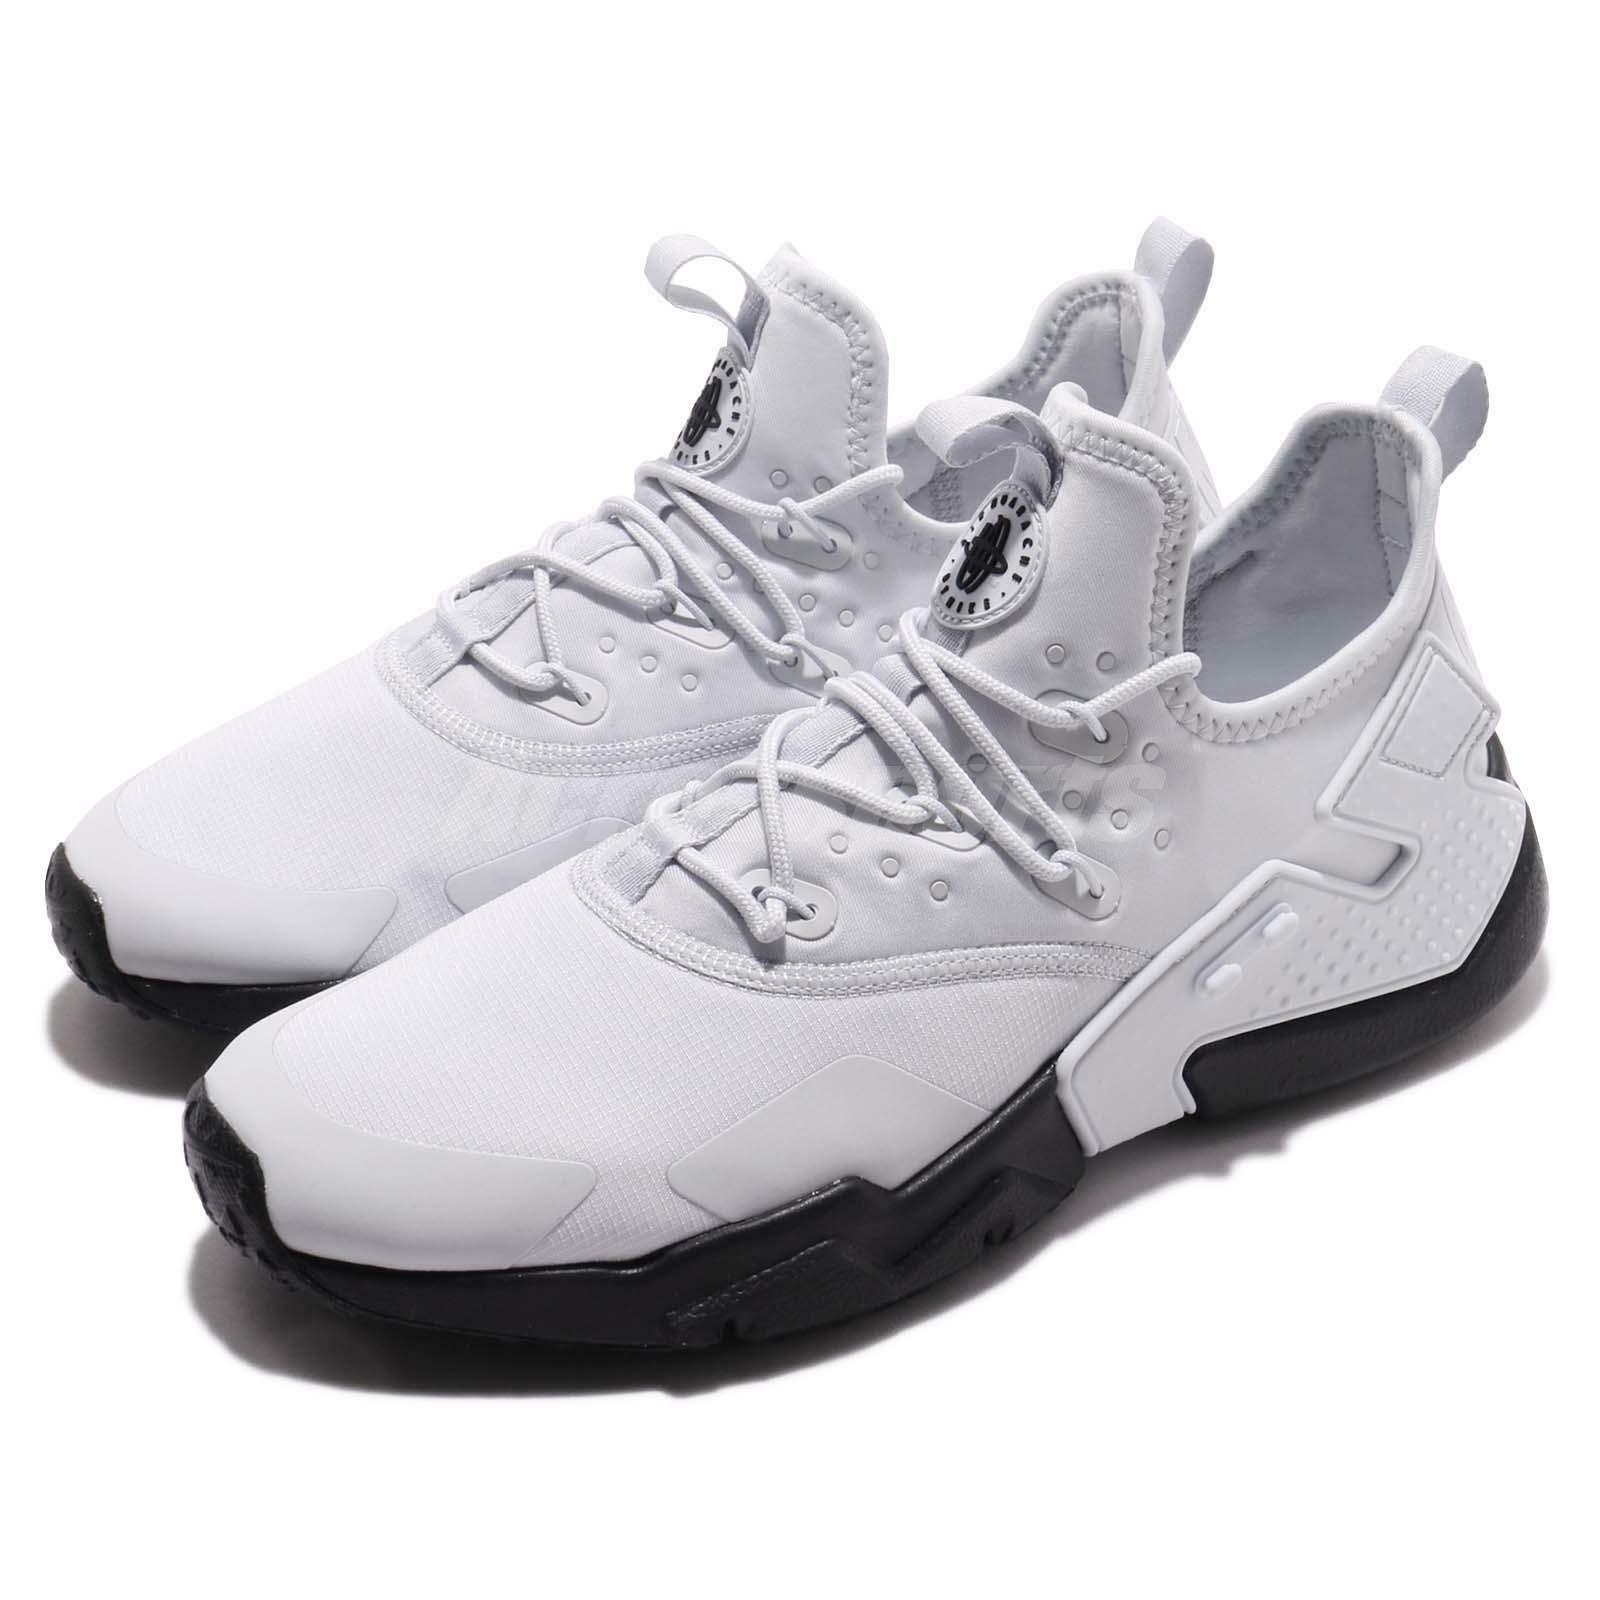 51e8f14254 Nike Air Huarache Drift Platinum Men Running shoes Sneaker AH7334-012 Pure  Black nqacyf327-Men